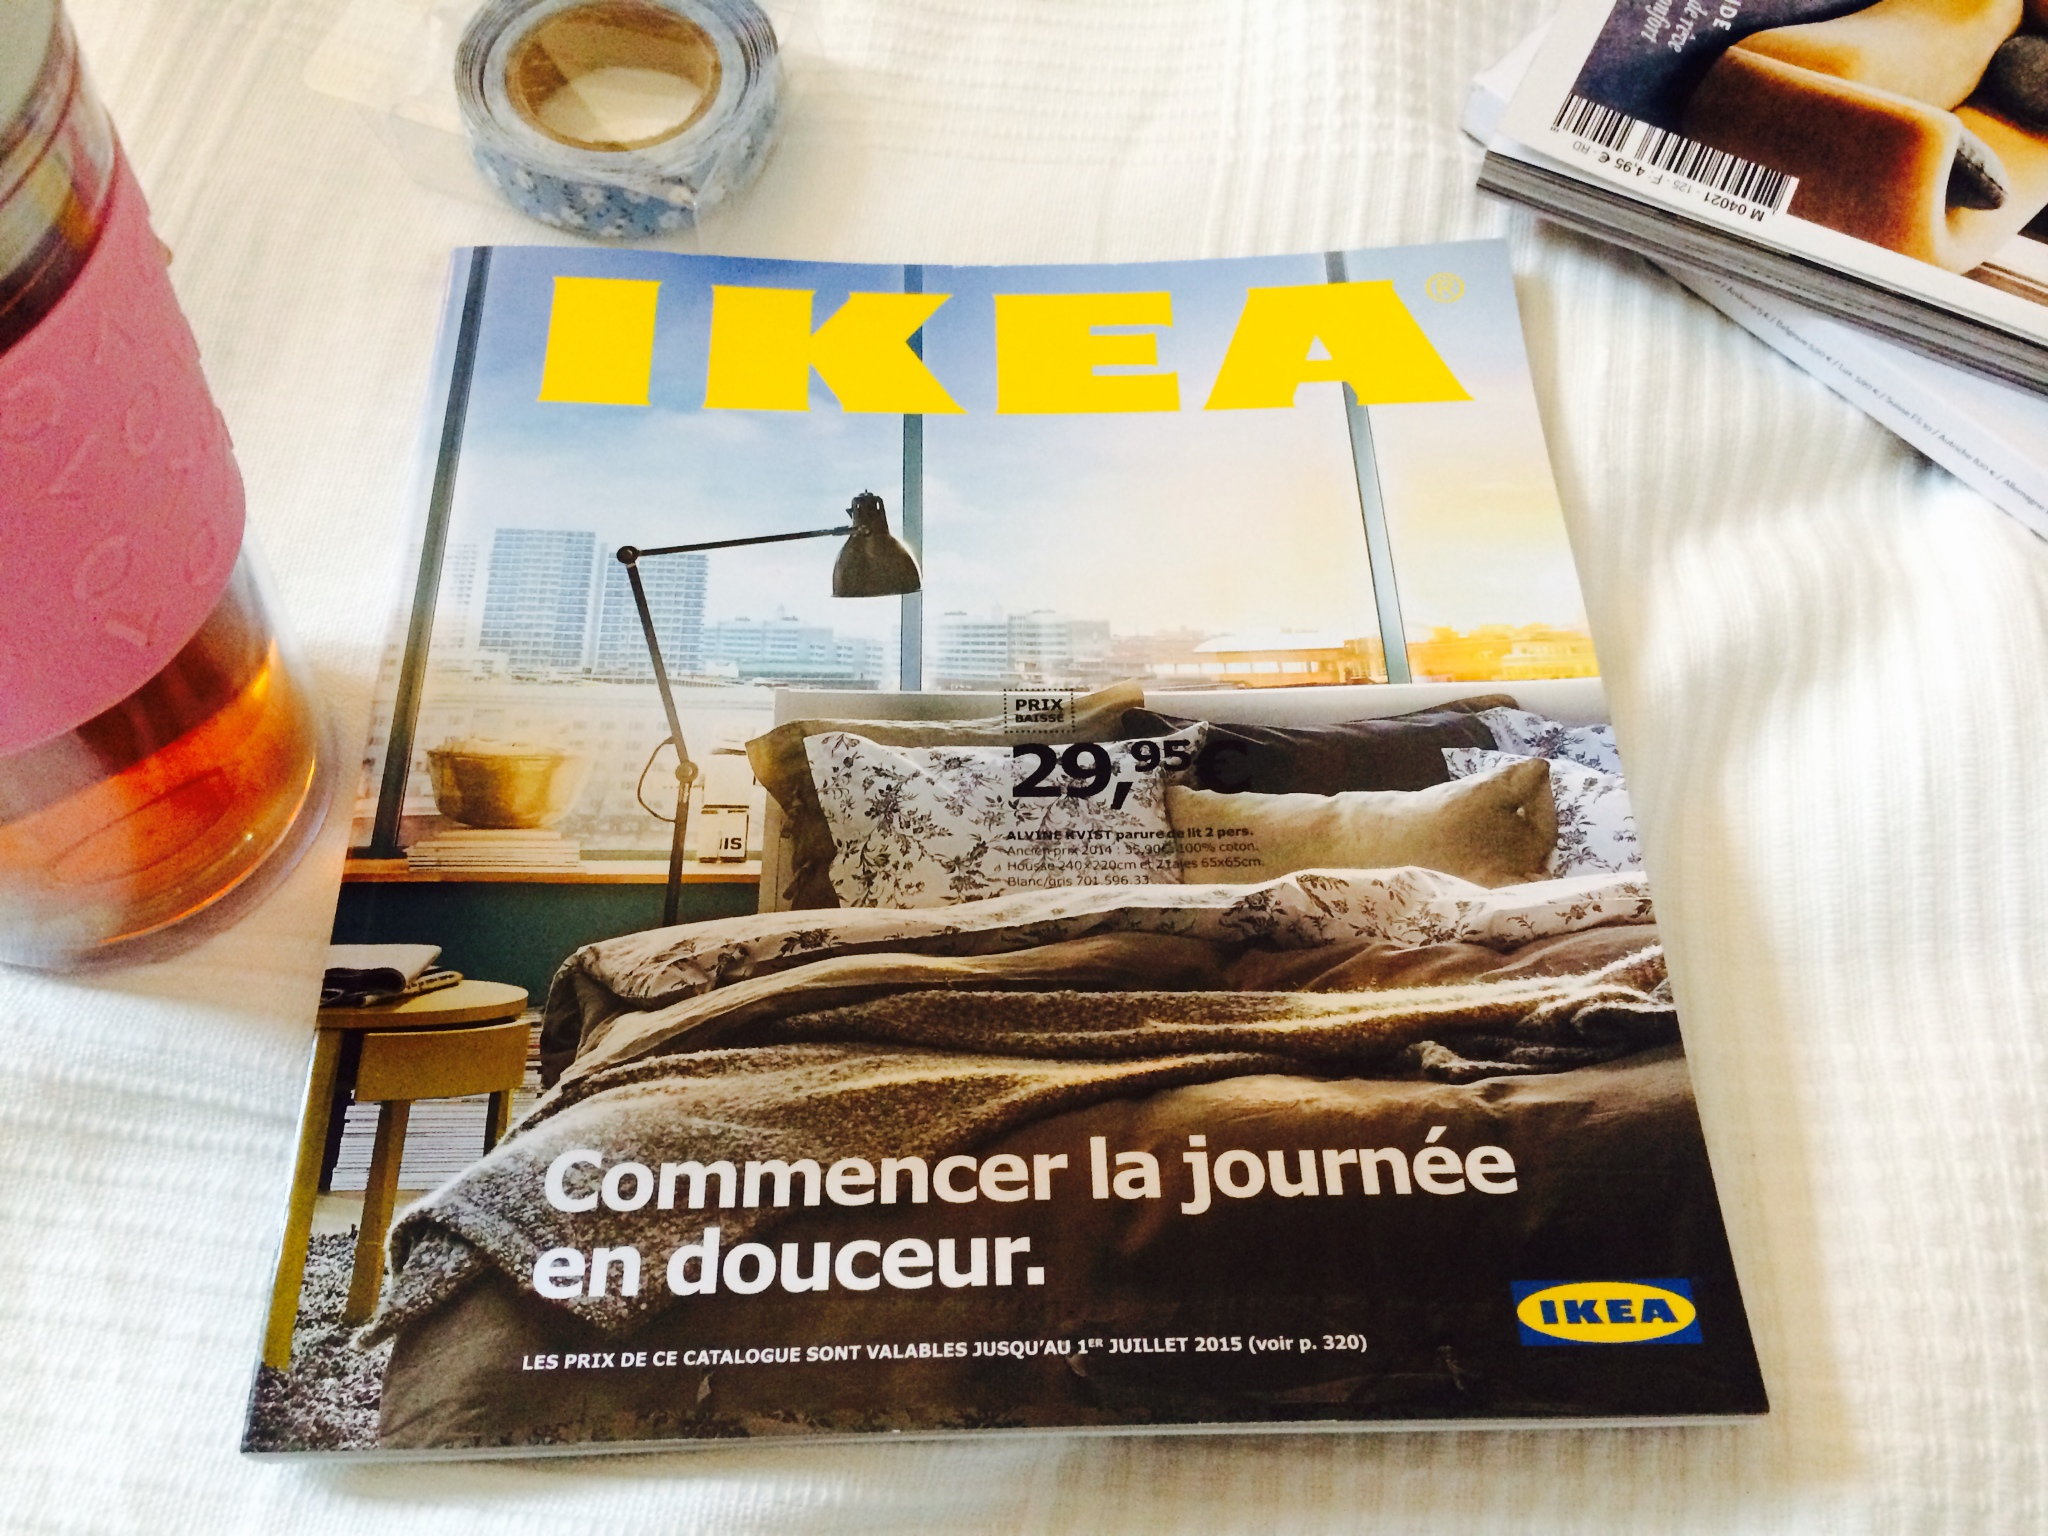 le nouveau catalogue ikea 2015 entre mes mains. Black Bedroom Furniture Sets. Home Design Ideas